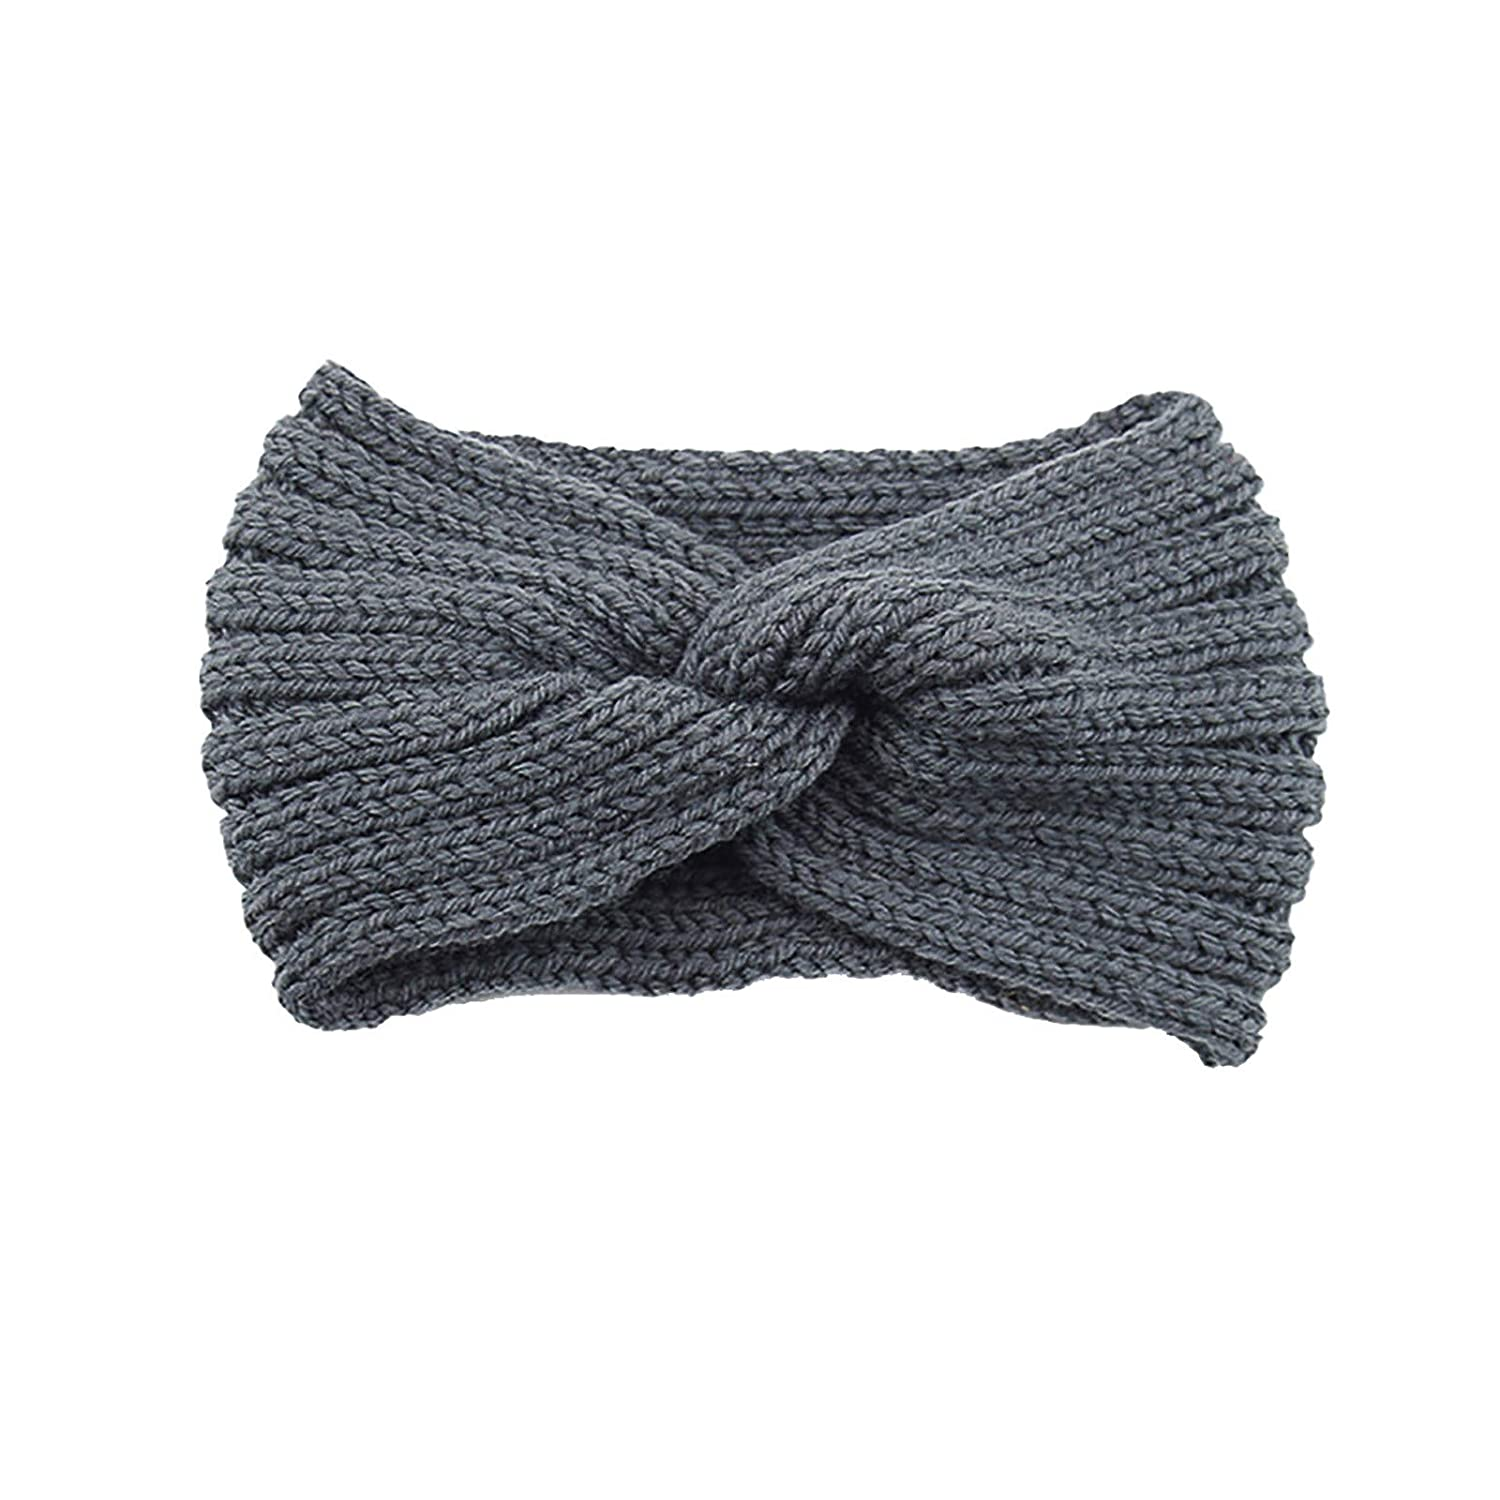 Thatso Winter Headbands for Women, Ear Warmer Headband with Buttons, Soft Stretchy Thick Cable Knitted Turban Hairband Gift (Dark Gray,One Size)